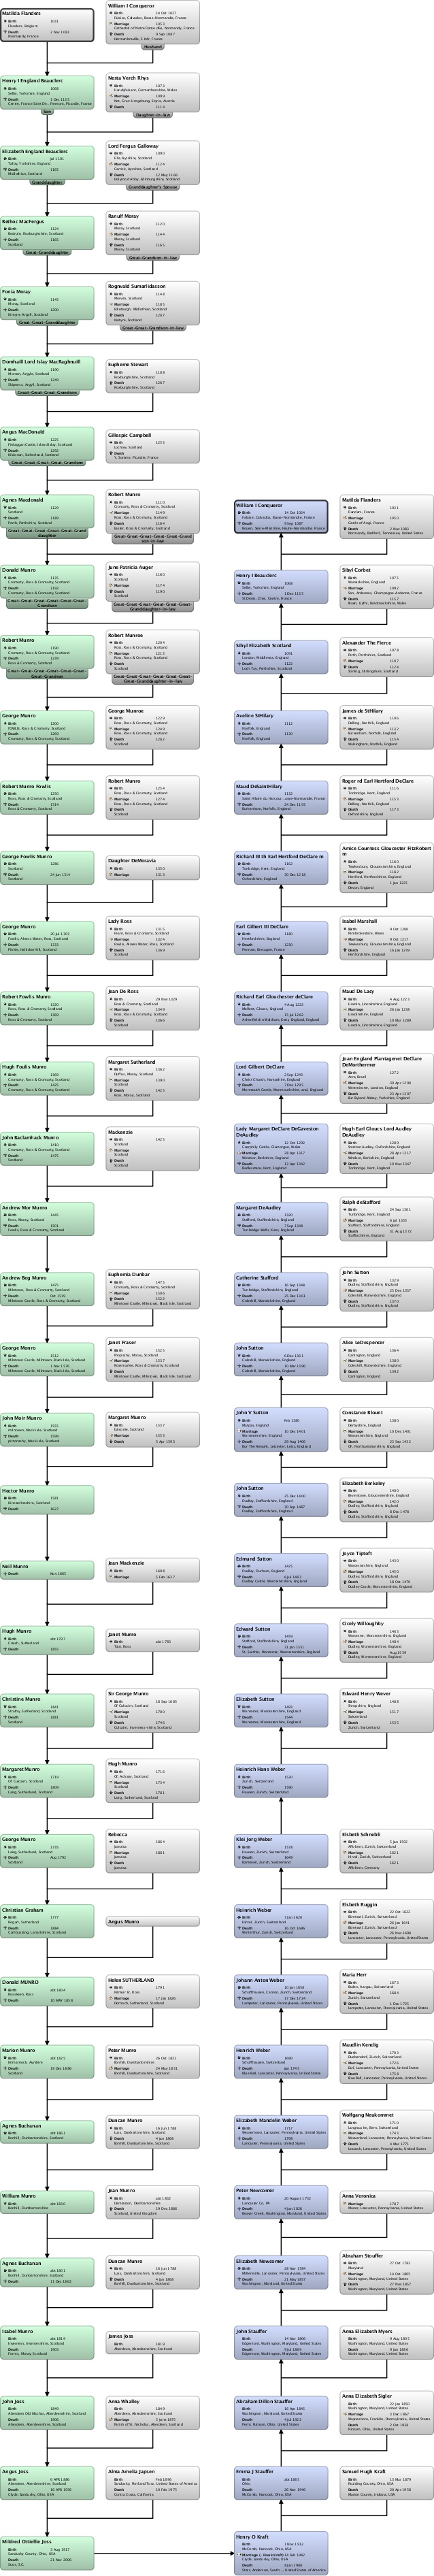 Relationship chart Matilda Flanders : William I Conqueror England